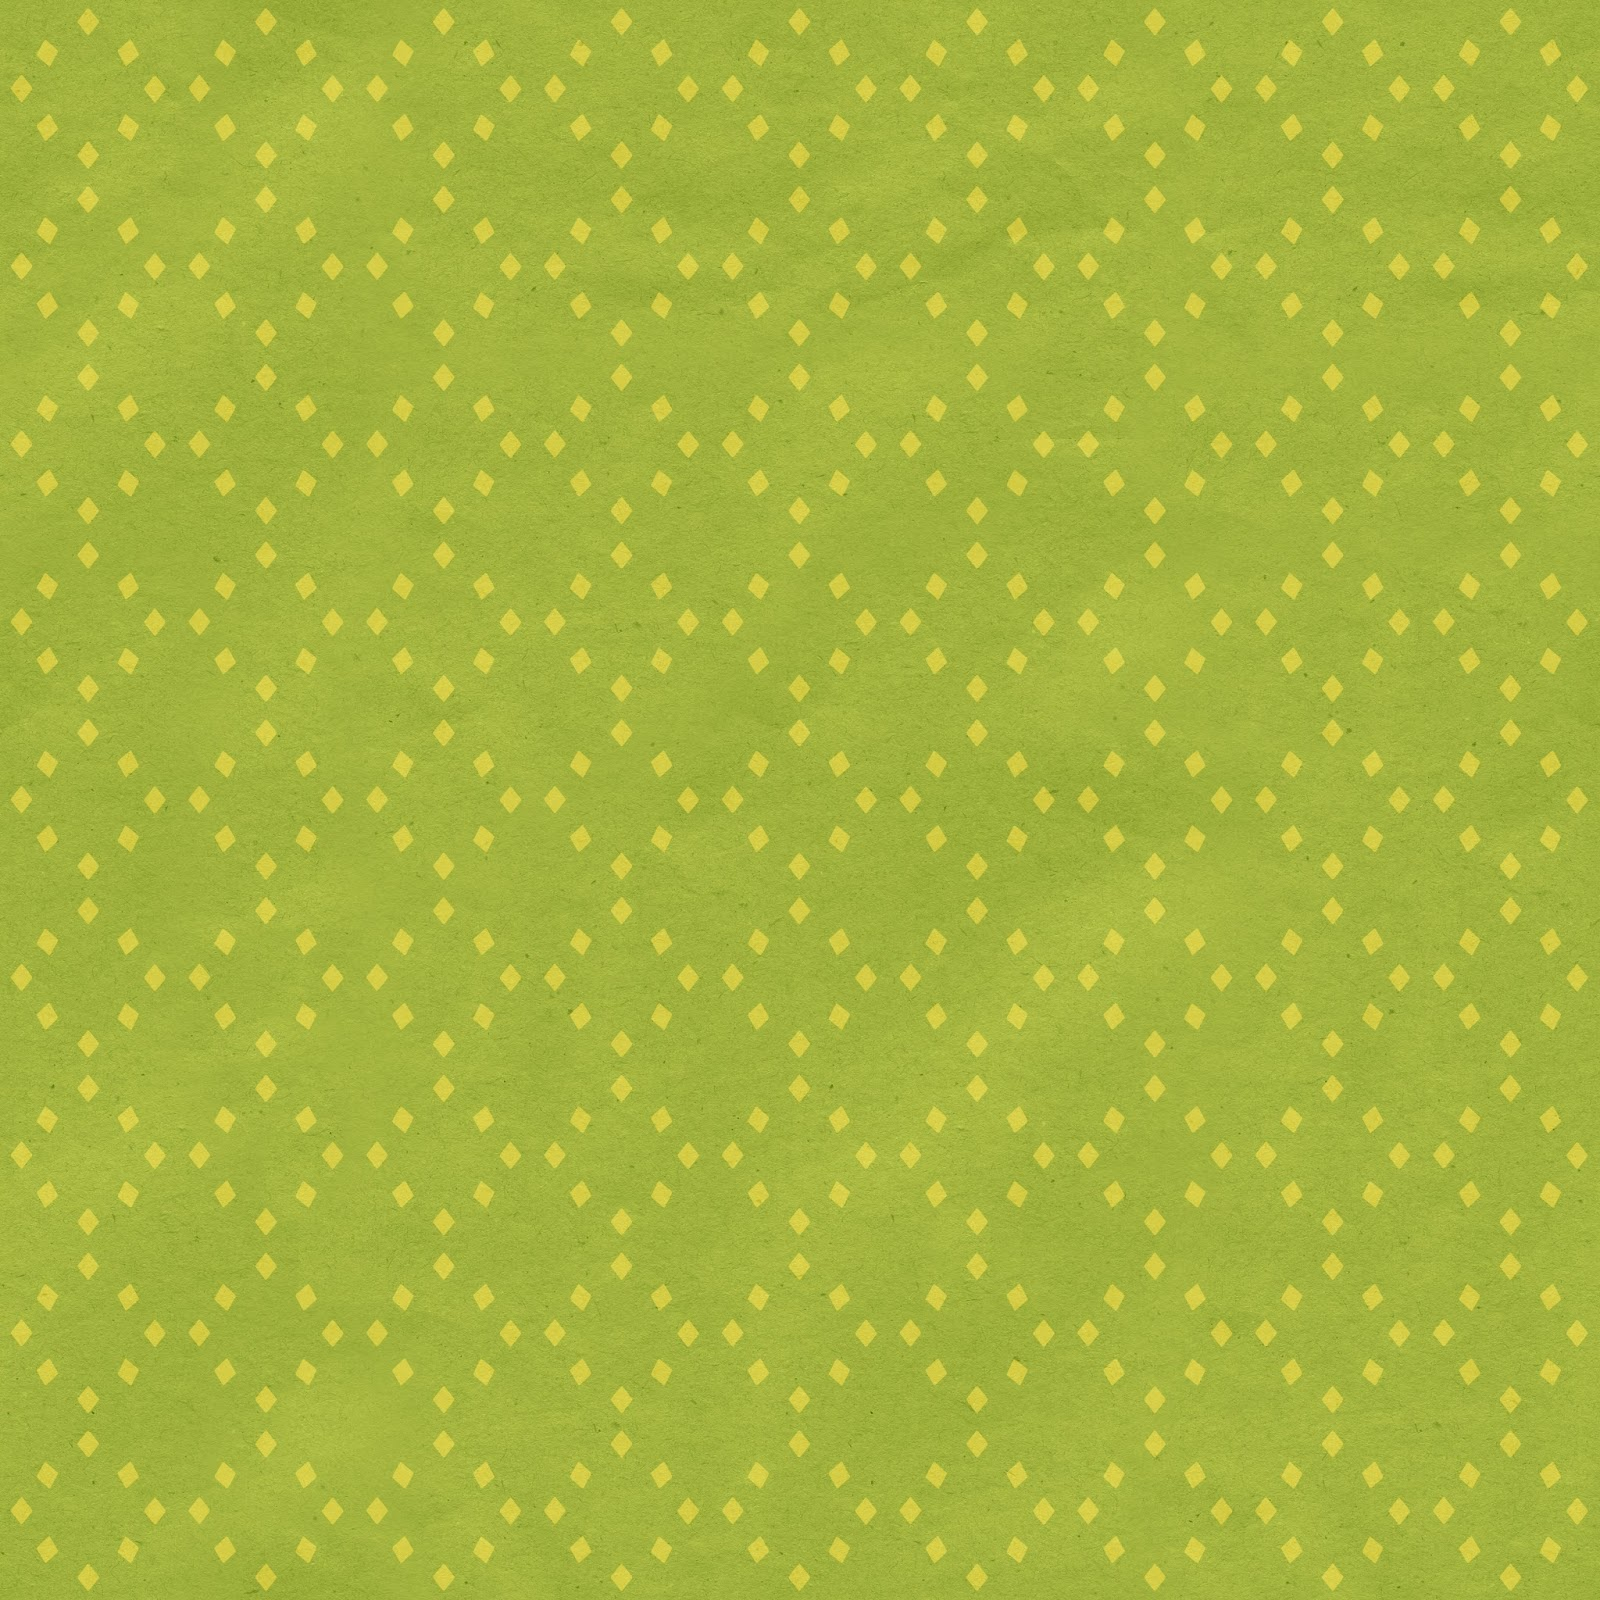 Oklahomadawn Do The Zoo Paper 2 Free Scrapbook Paper